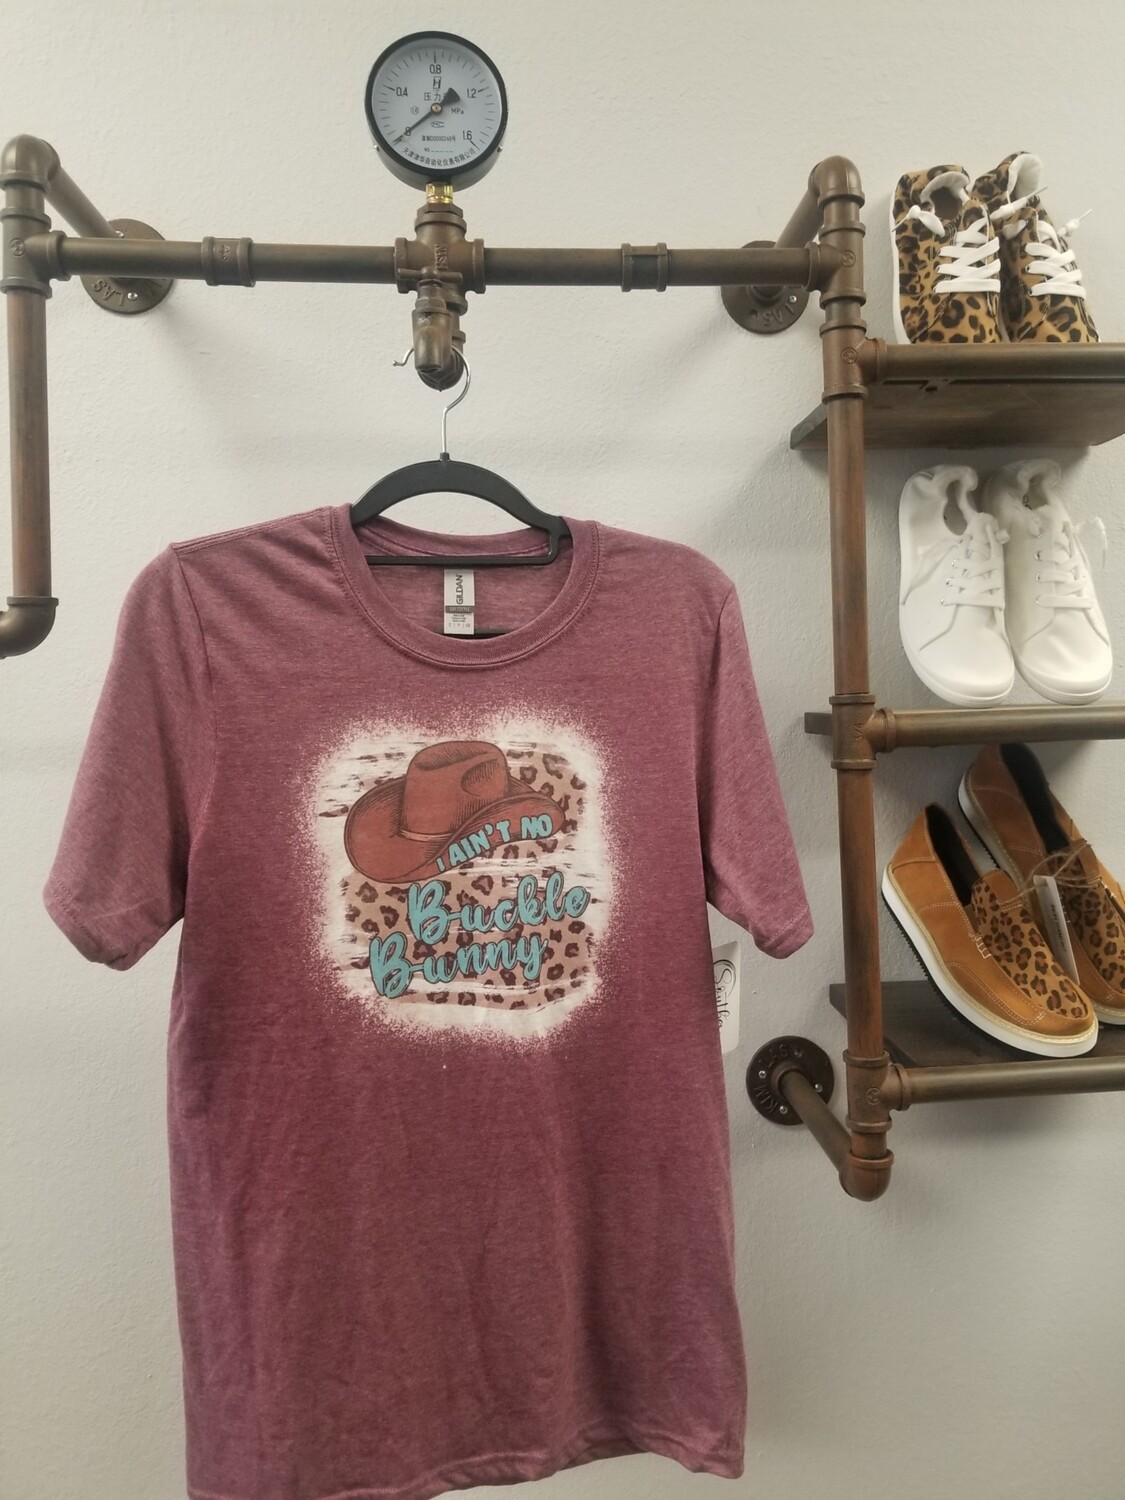 Maroon & Bleached I Ain't No Buckle Bunny Shirt Size S